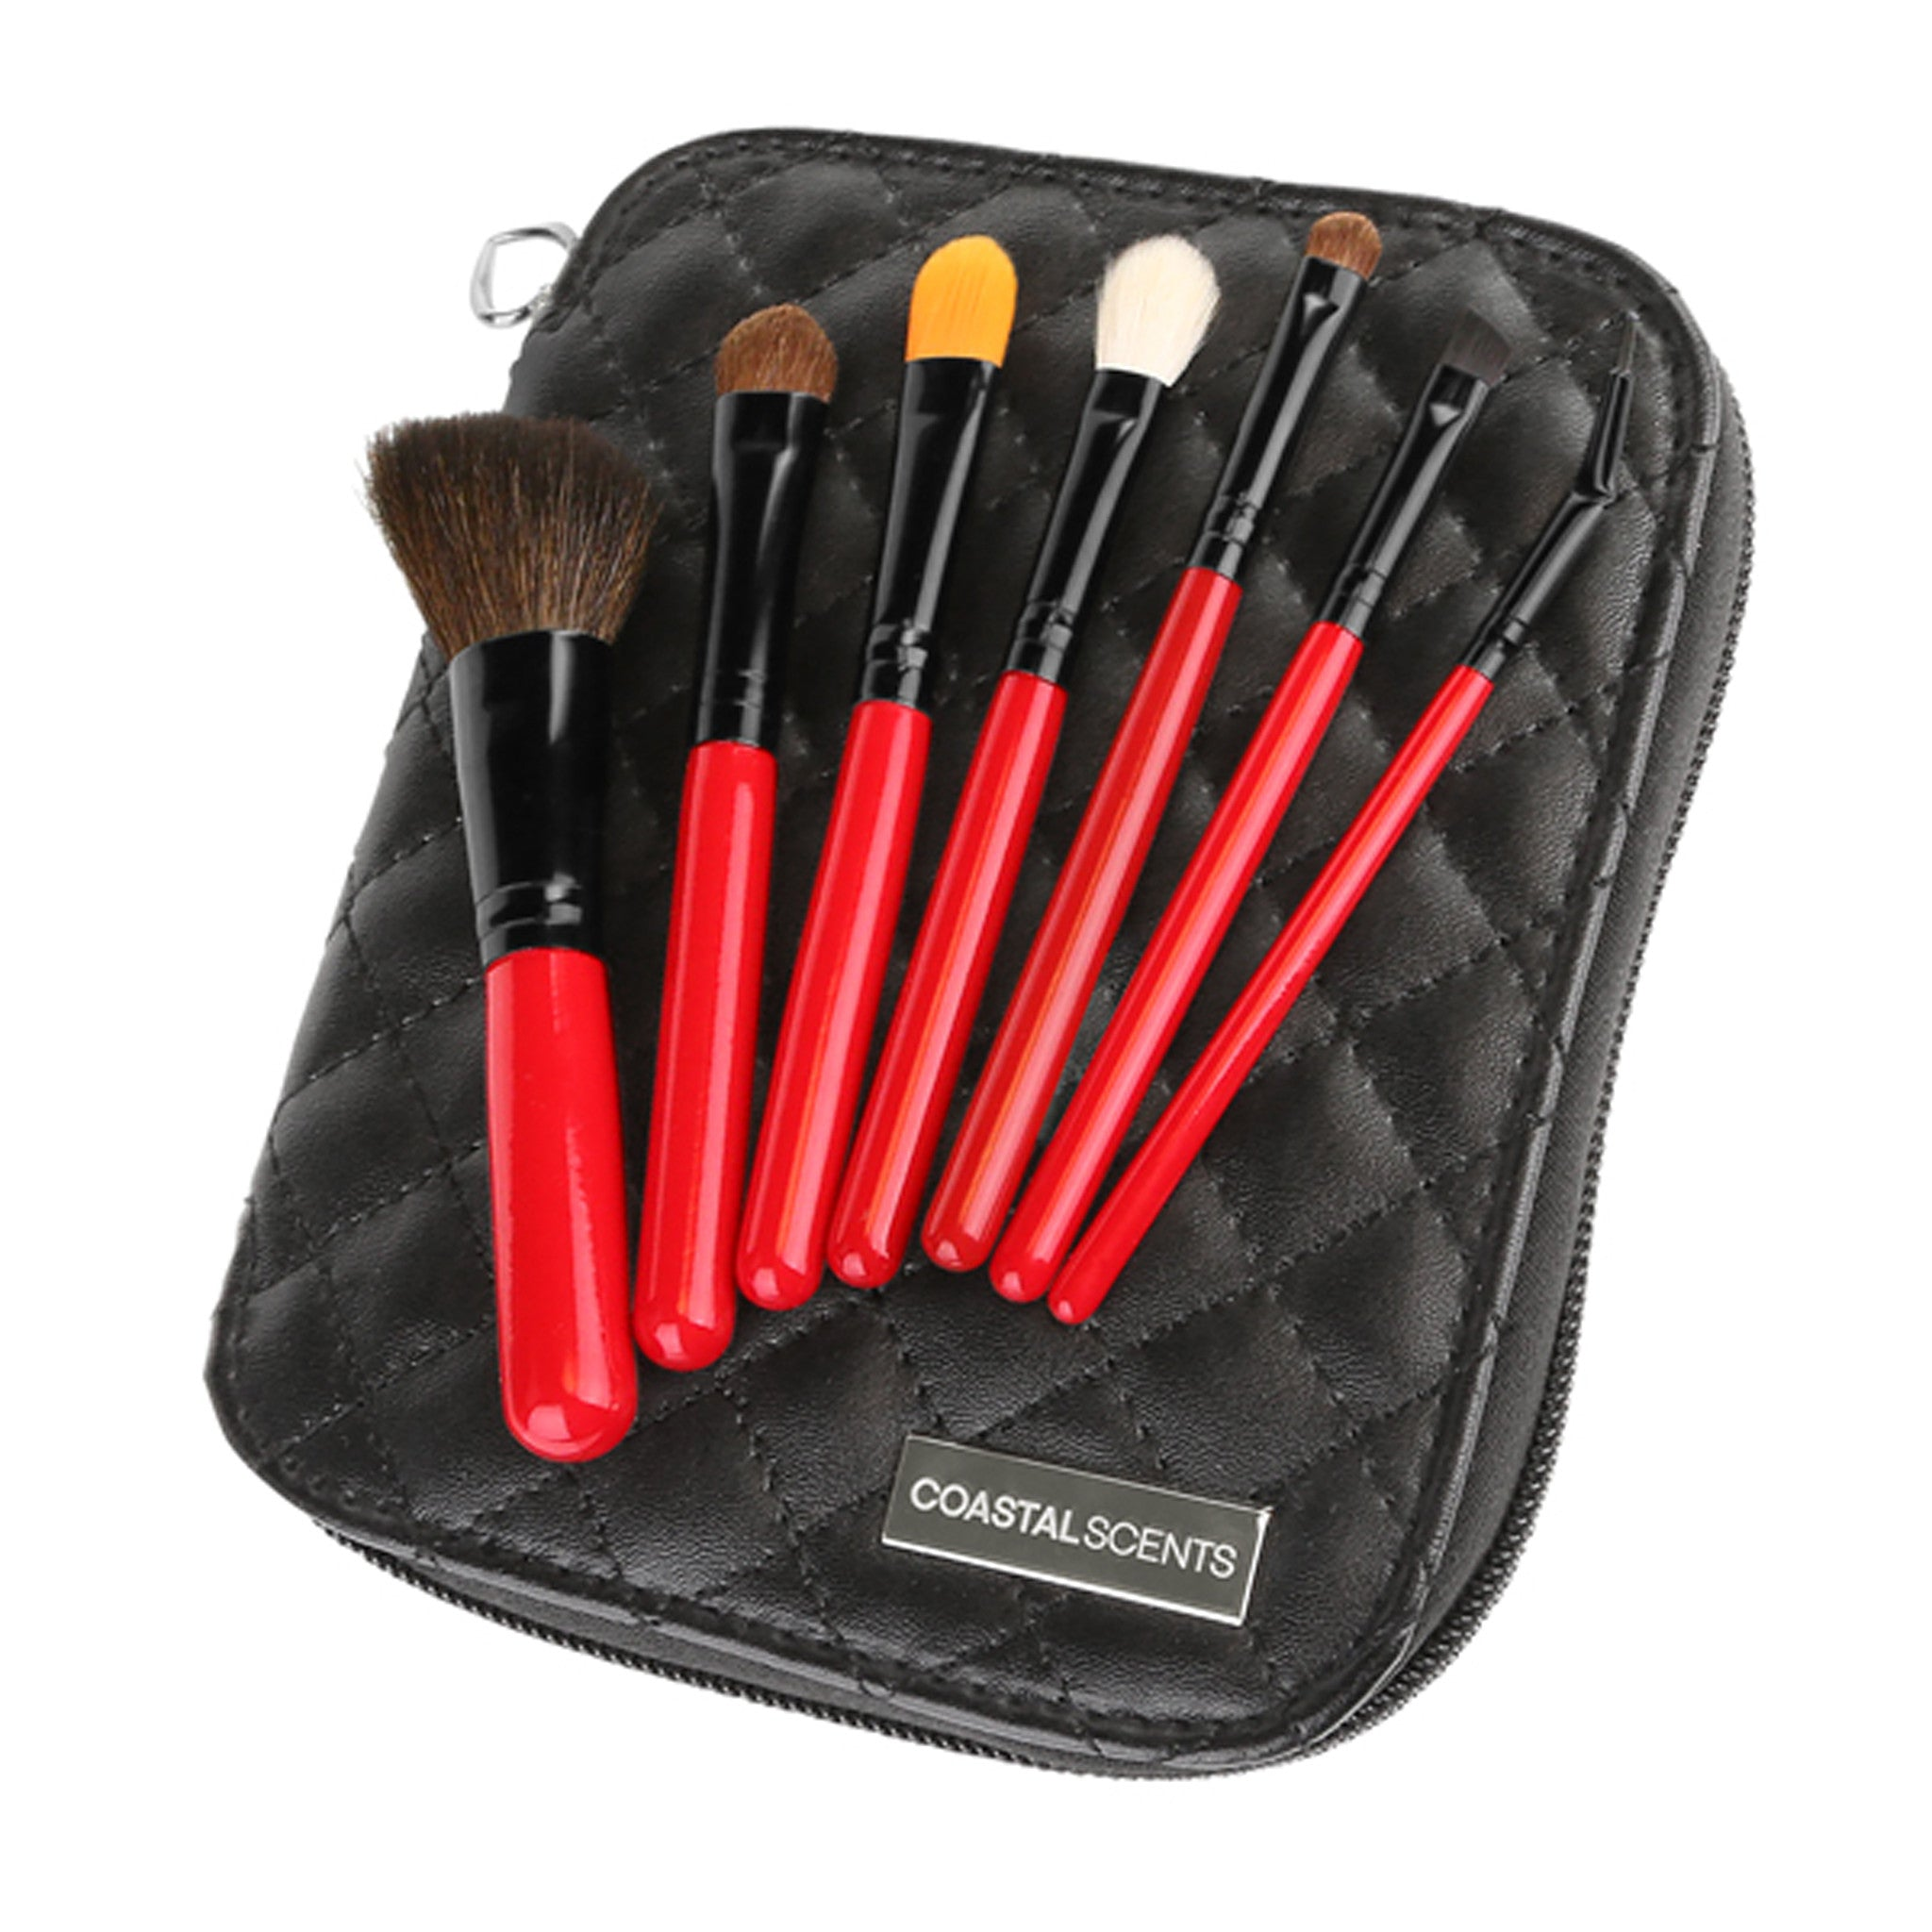 coastal scents brushes uses. citiscape travel brush set coastal scents brushes uses